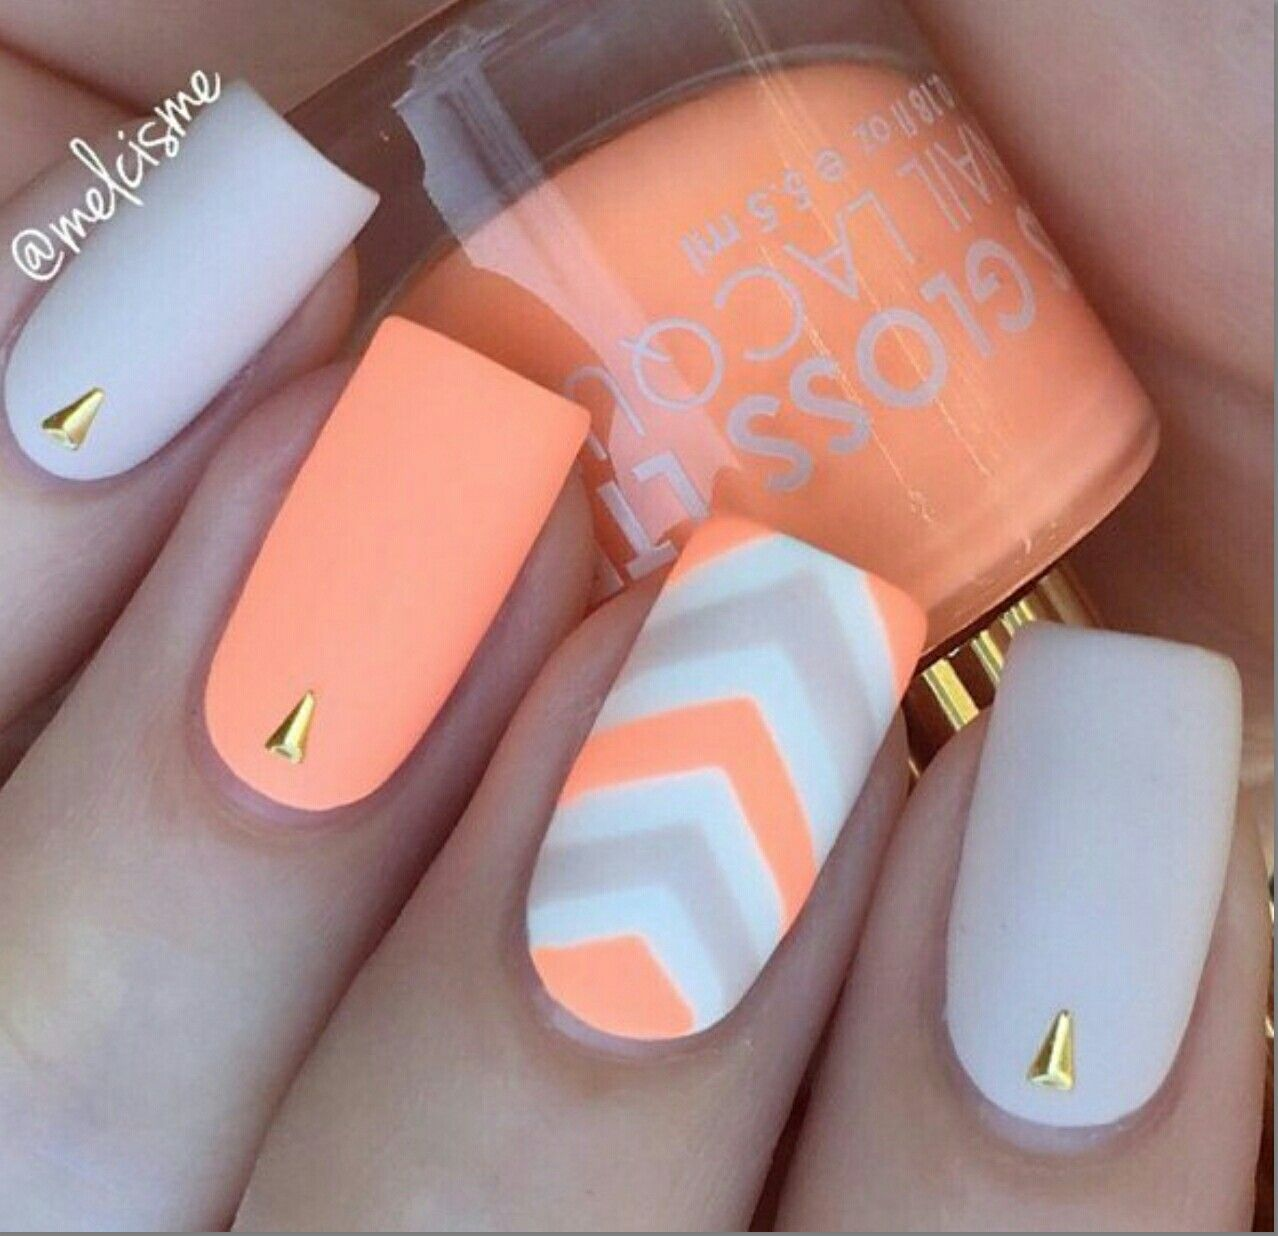 Pin by Courteney Greer on orange~peach nail polish | Pinterest ...